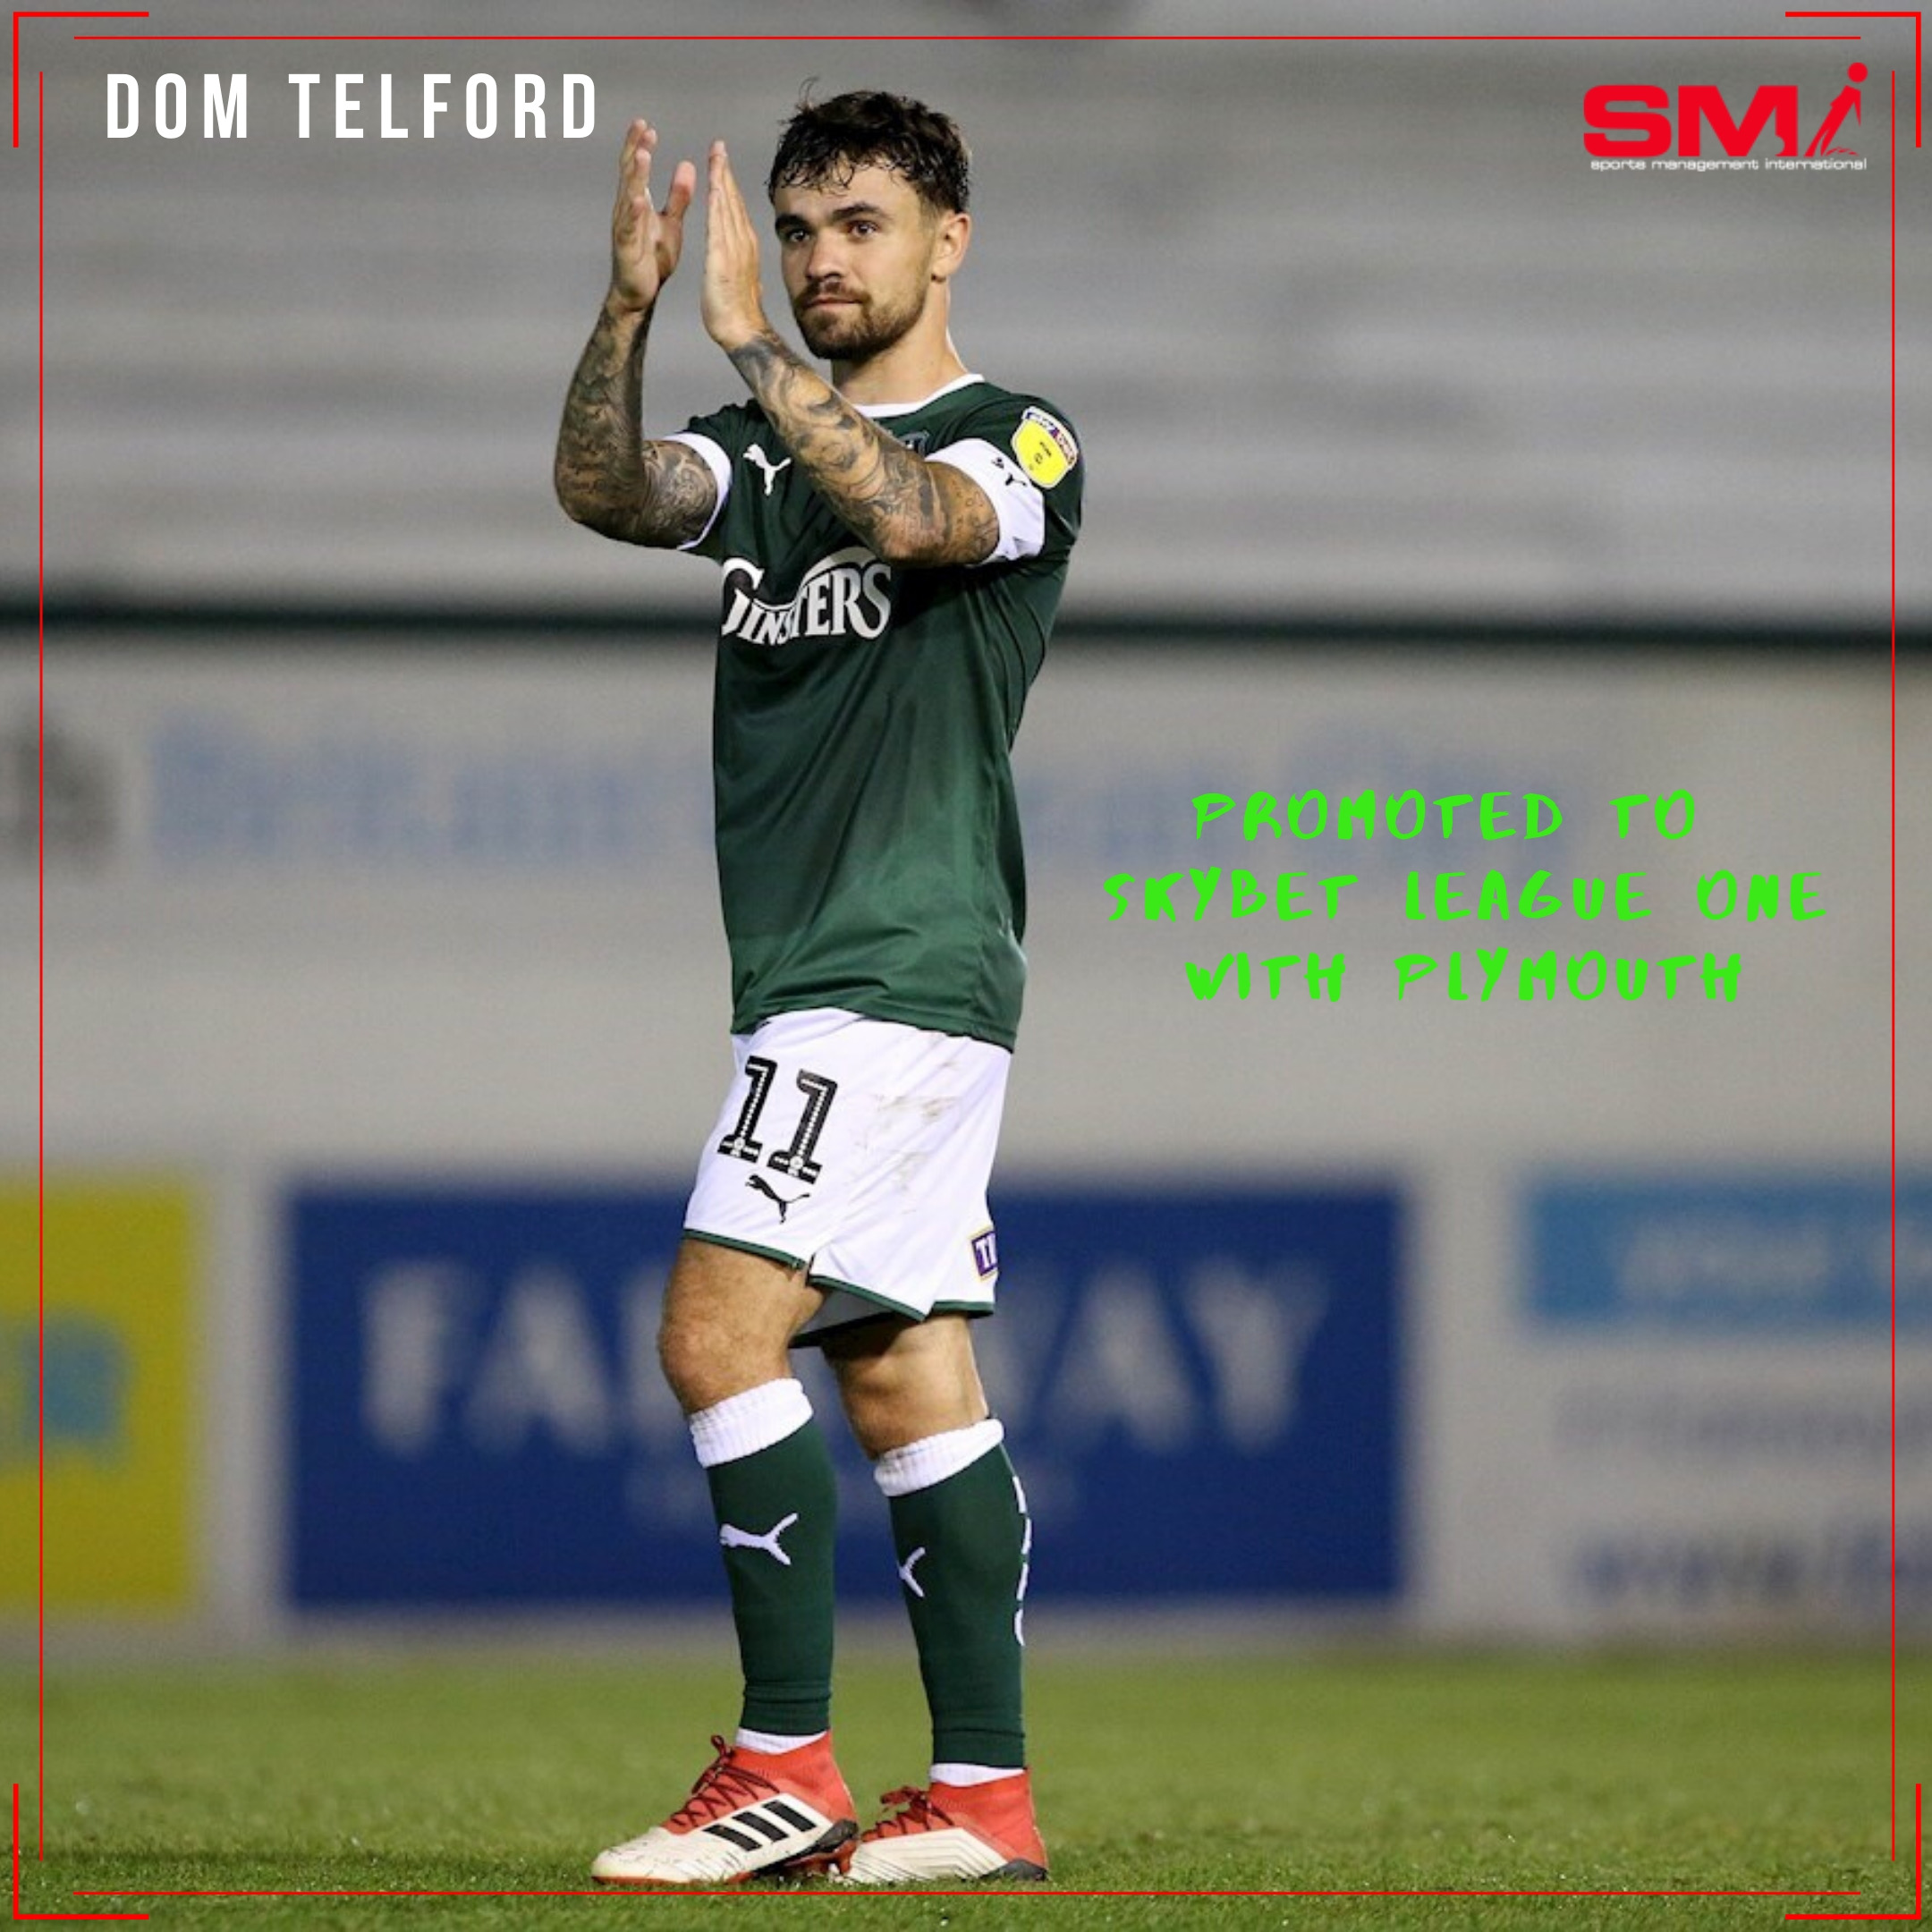 Dom Telford promotion